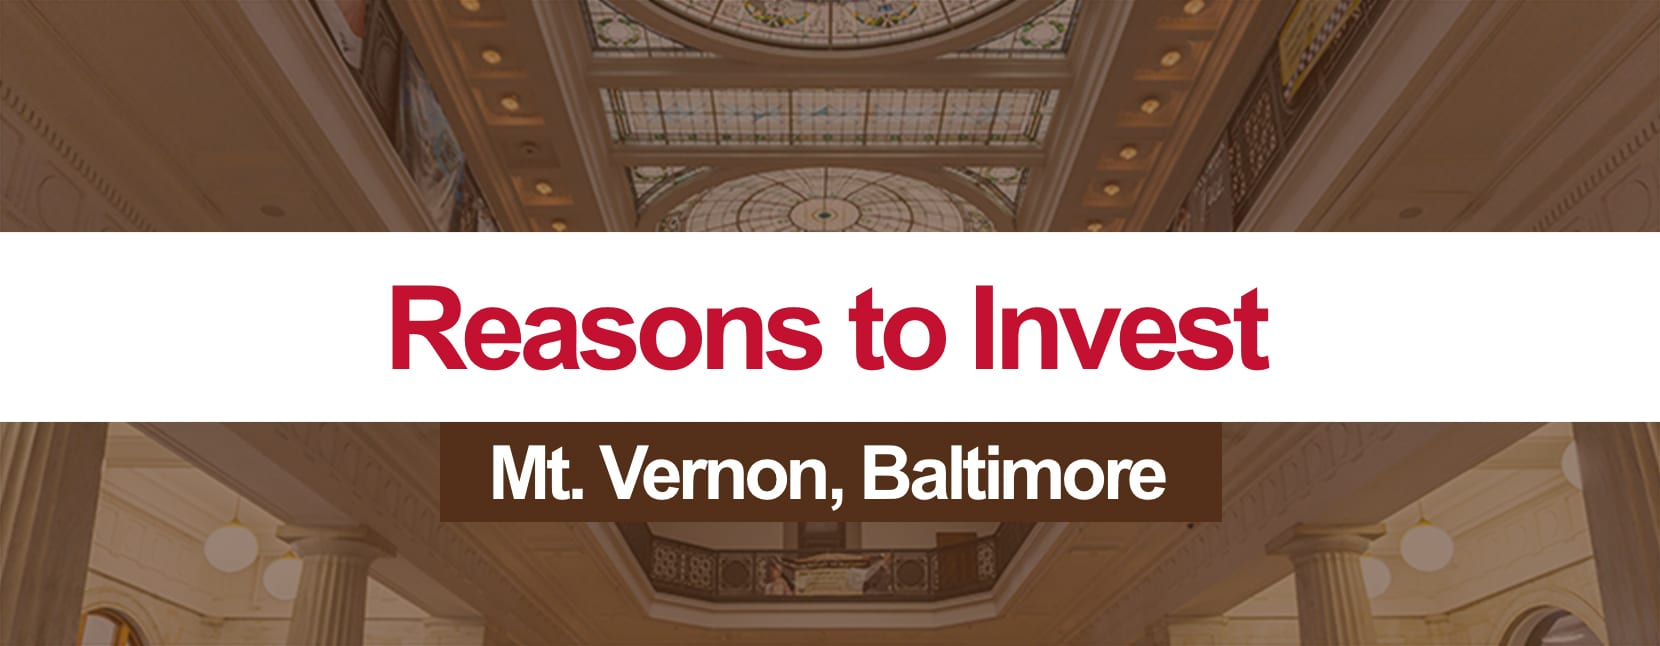 Reasons to Invest in Mt. Vernon